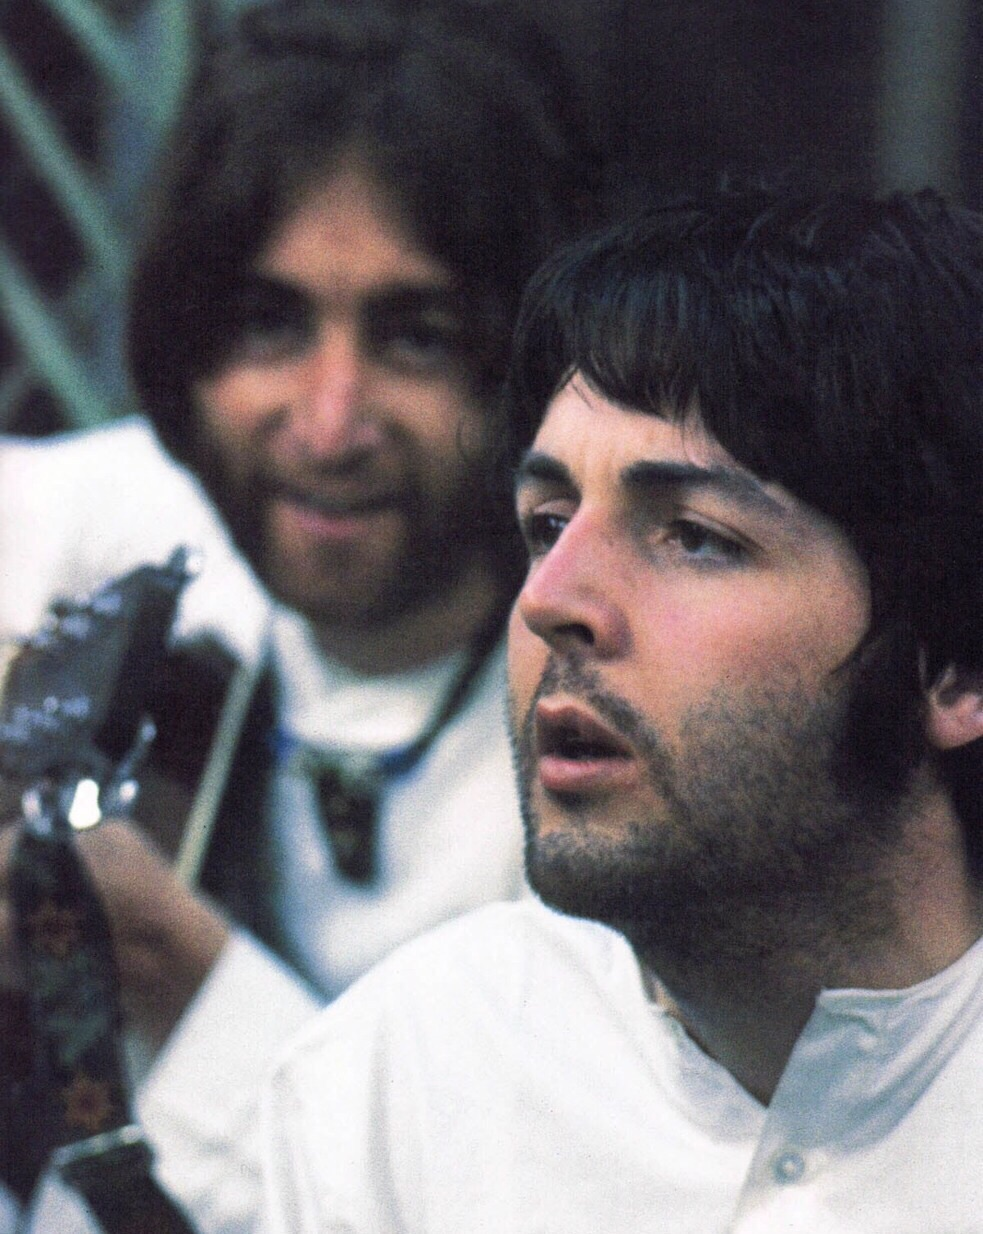 Paul McCartney and John Lennon in India 1968.